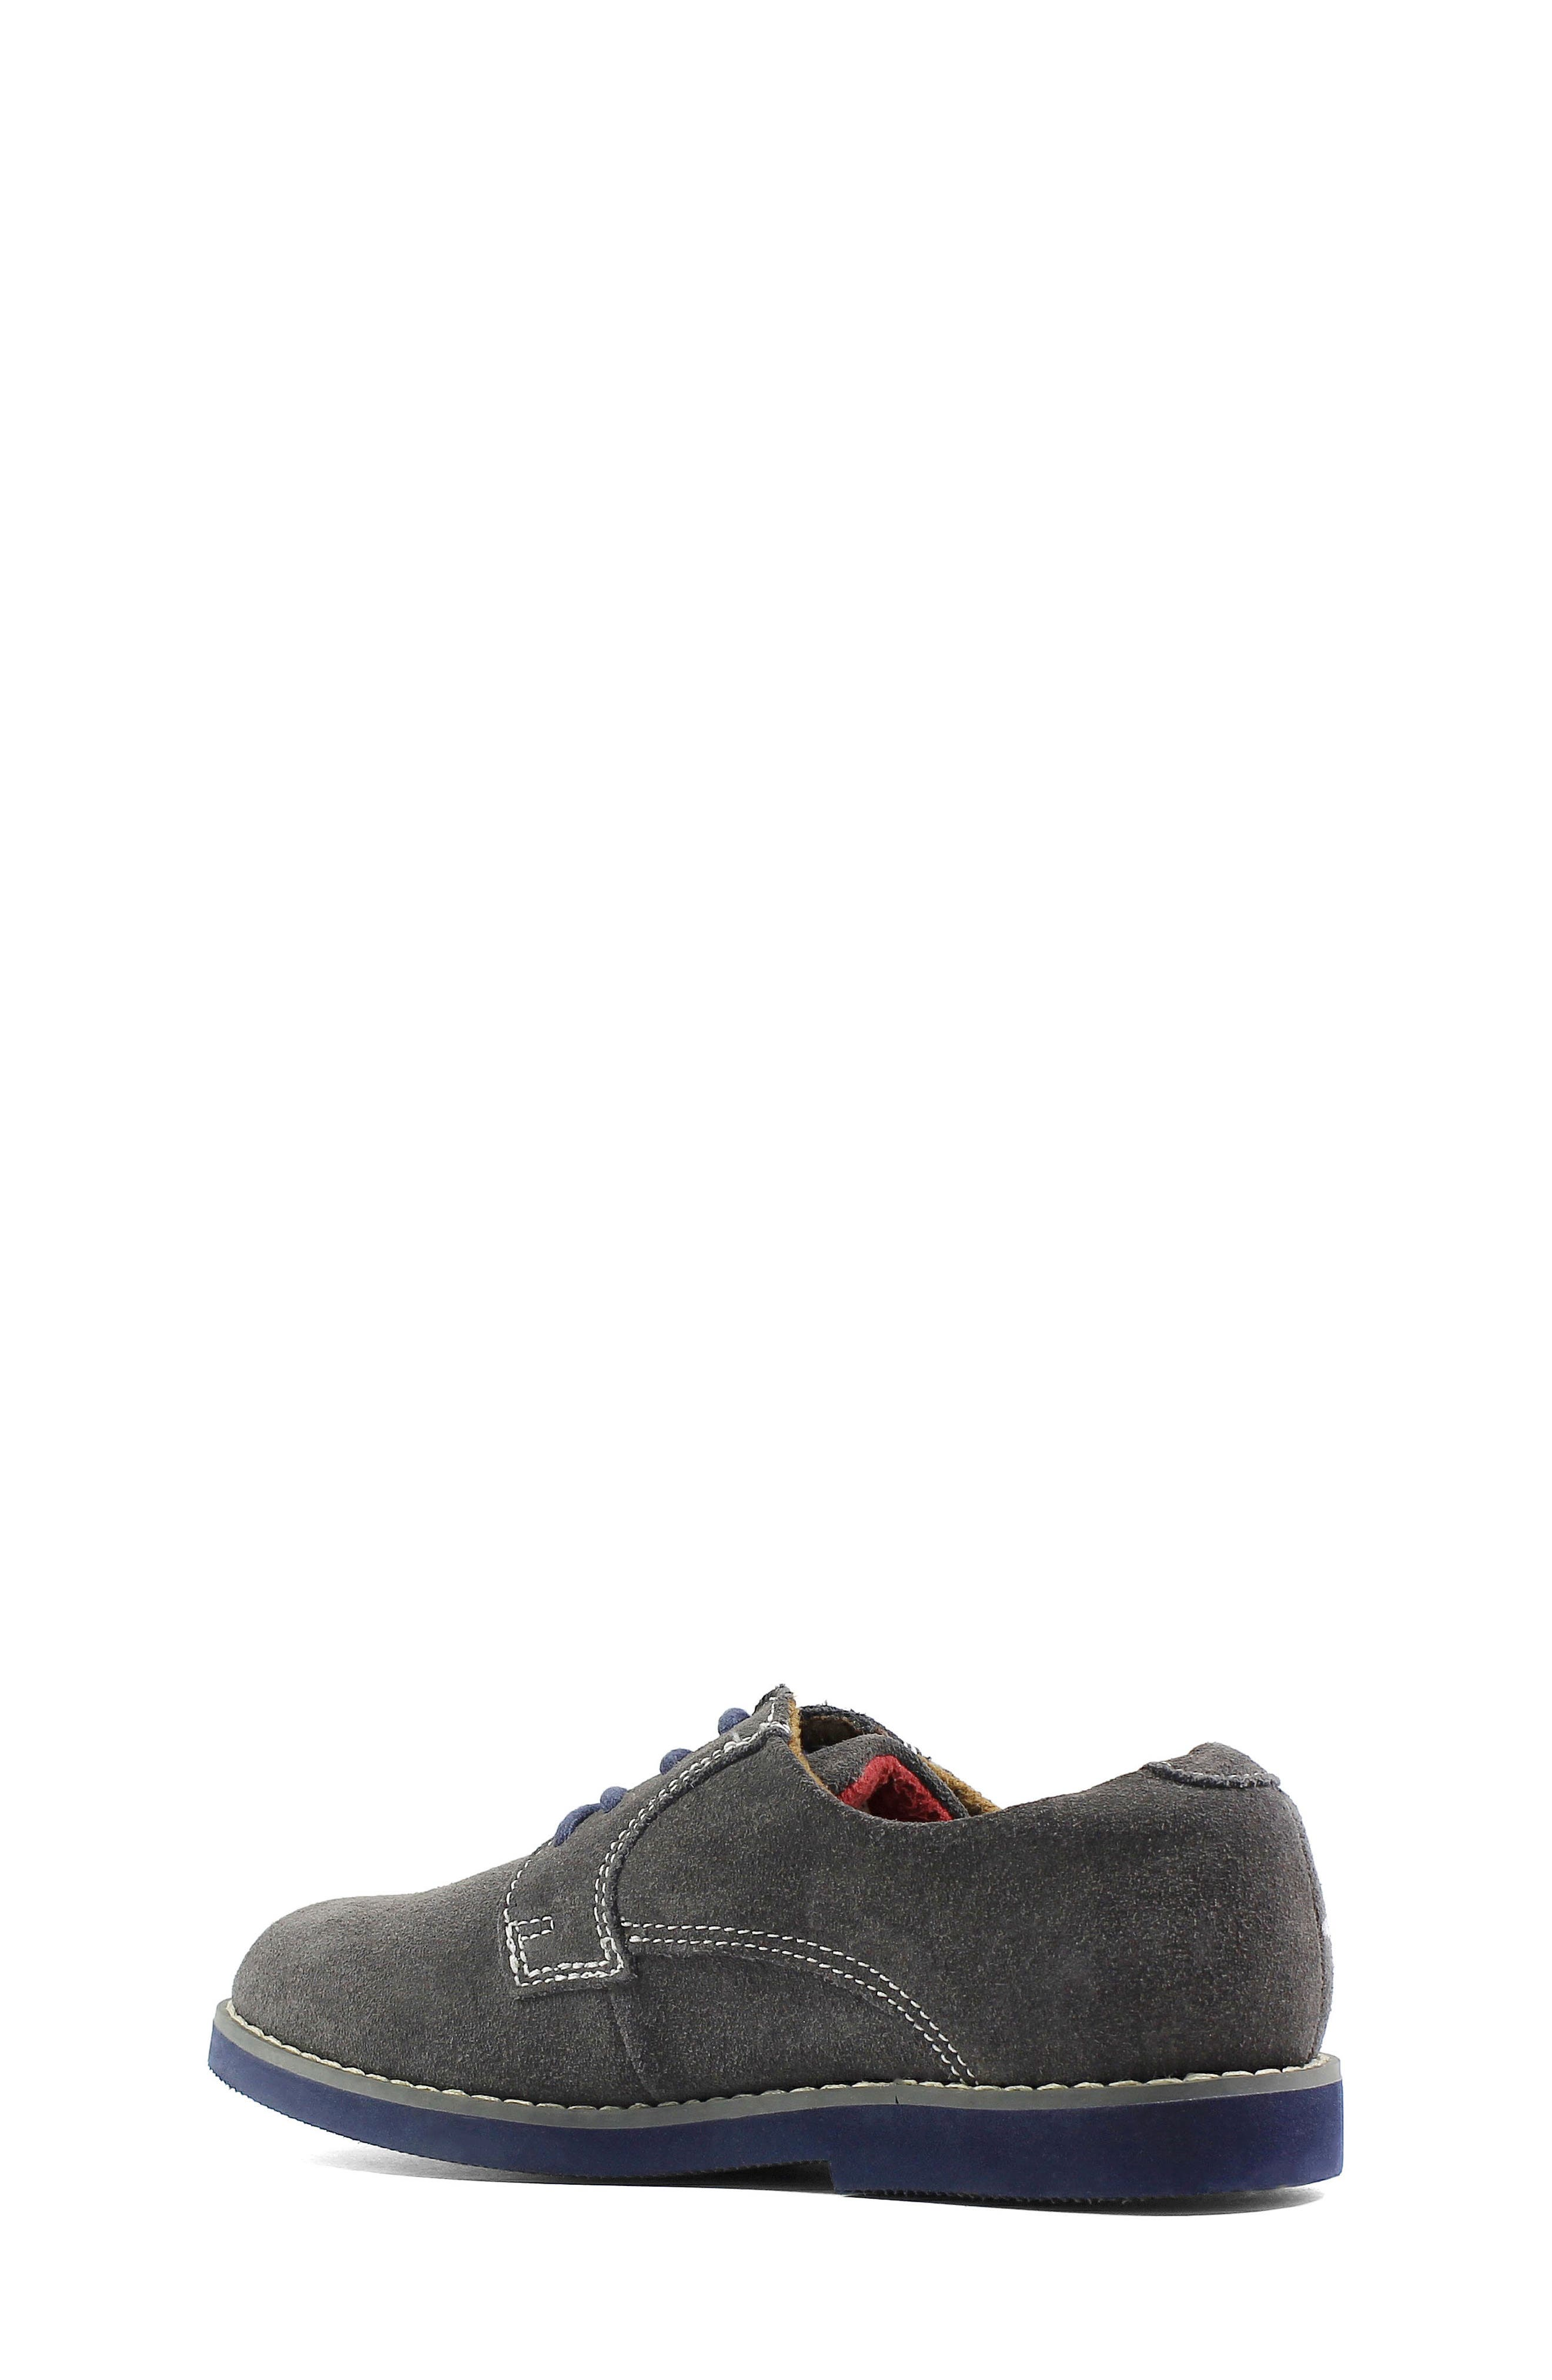 Kearny Two Tone Oxford,                             Alternate thumbnail 3, color,                             GREY/ NAVY SOLE